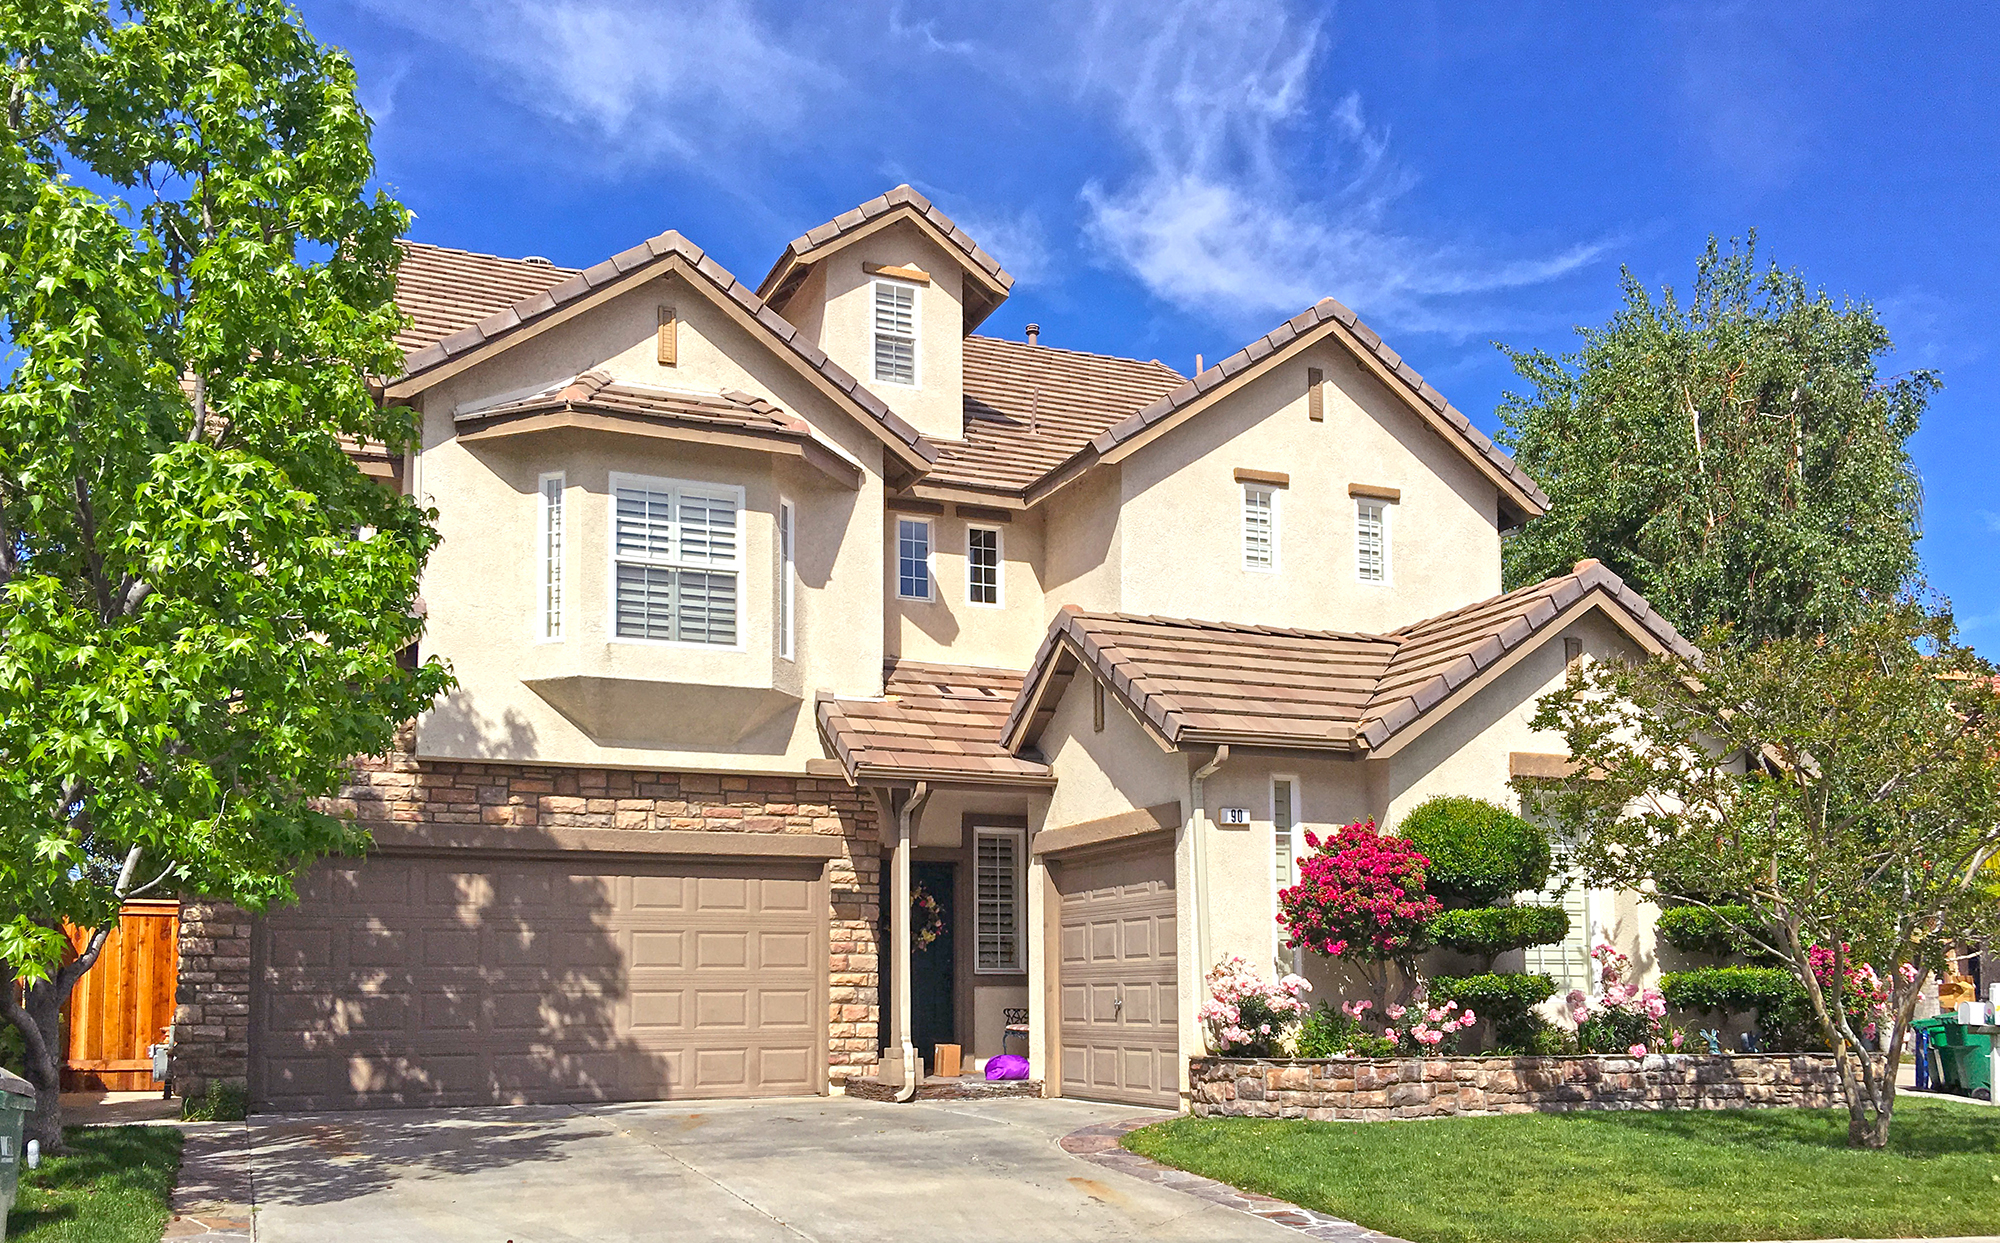 Newer Homes for Sale in Mission Viejo Painted Trails